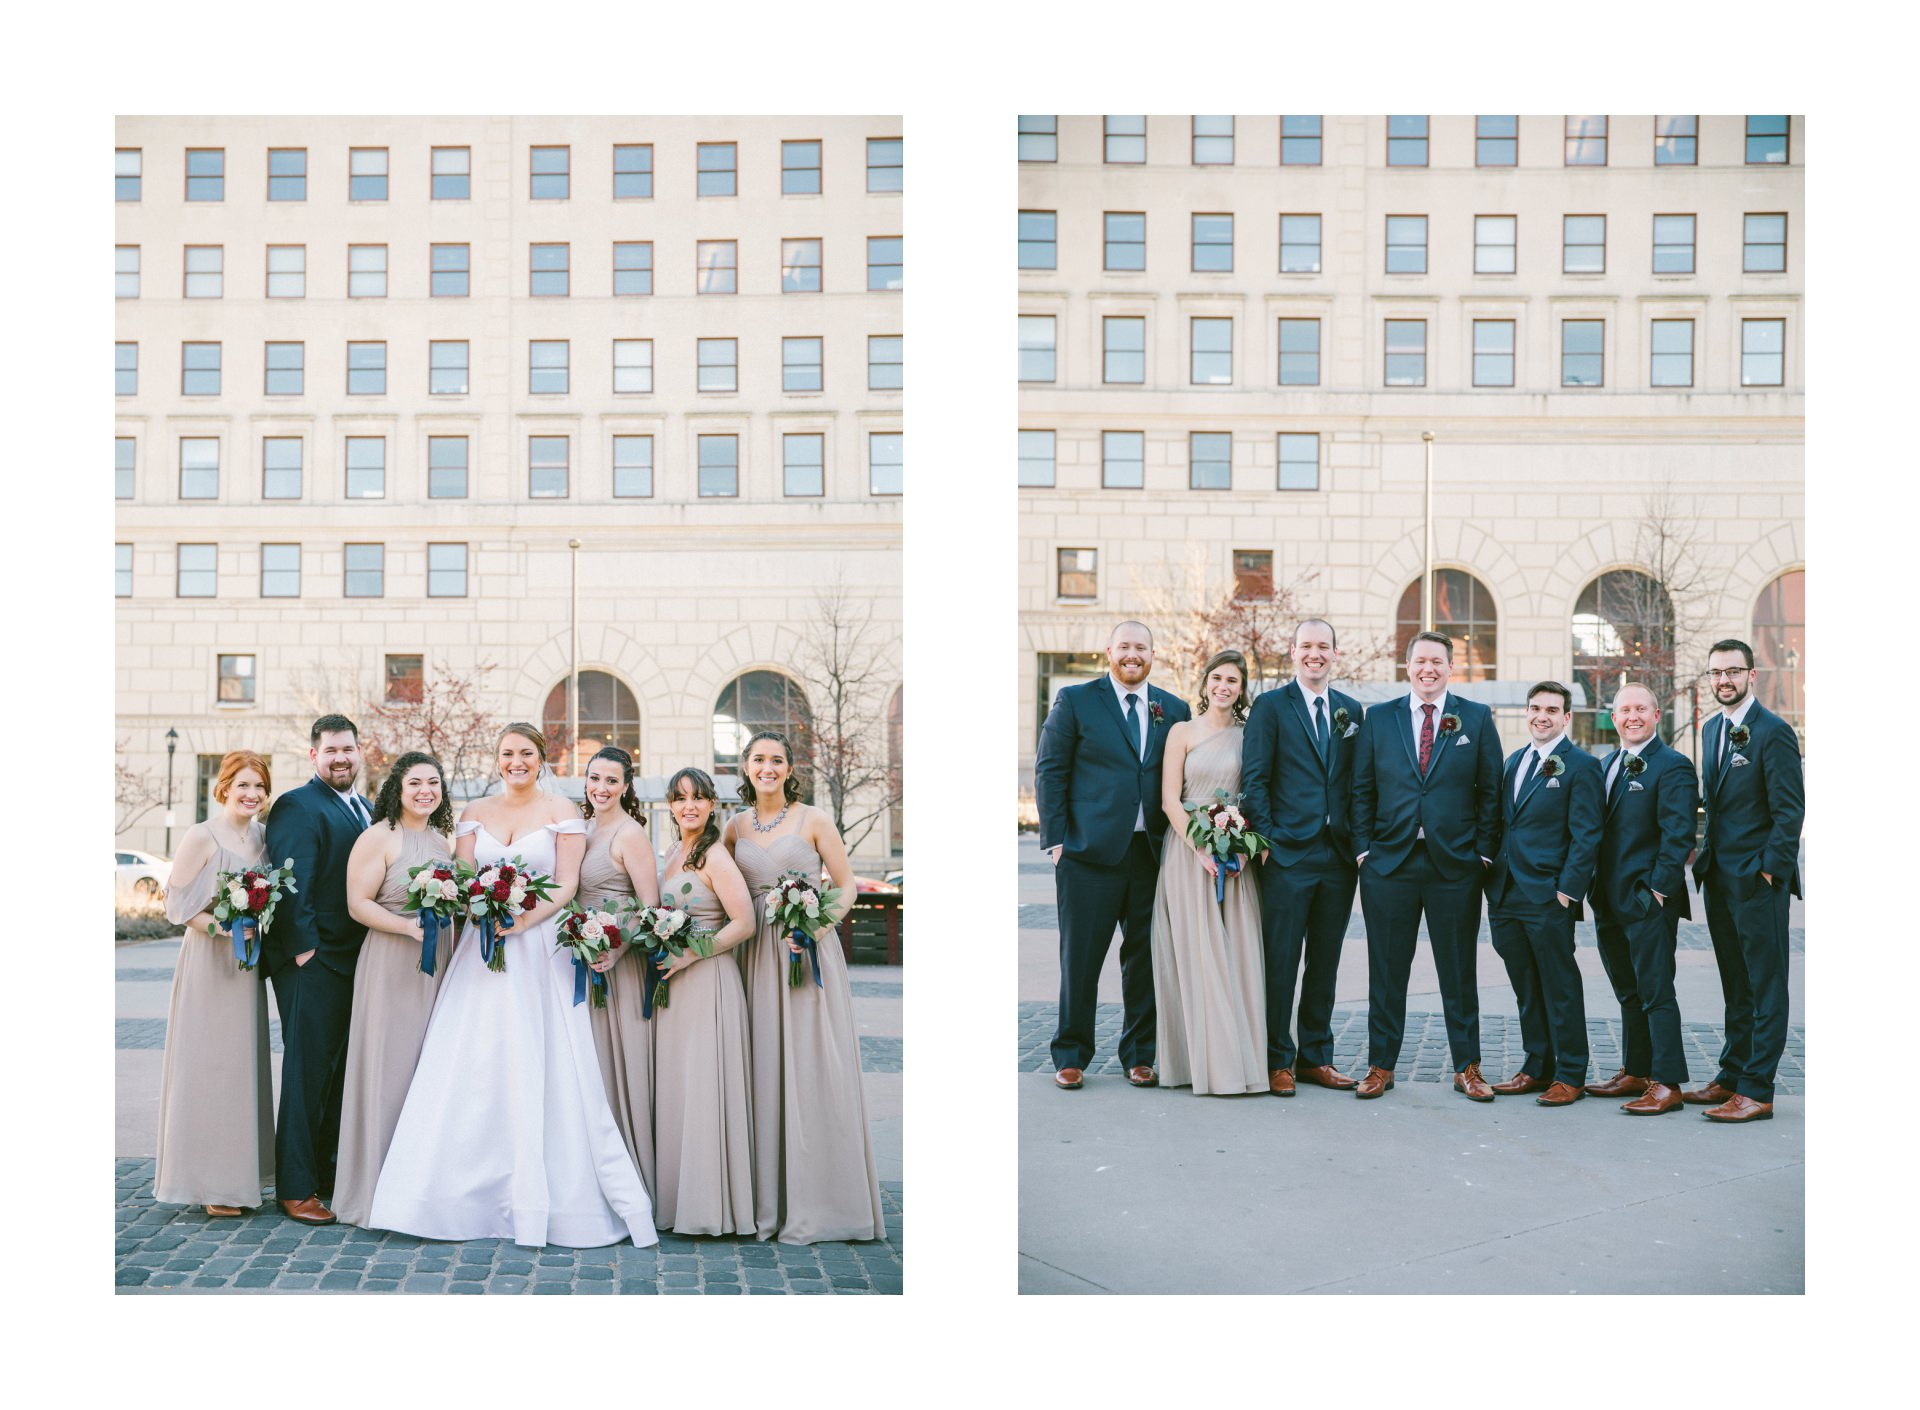 Windows on the RIver Wedding Photographer in Cleveland 1  49.jpg